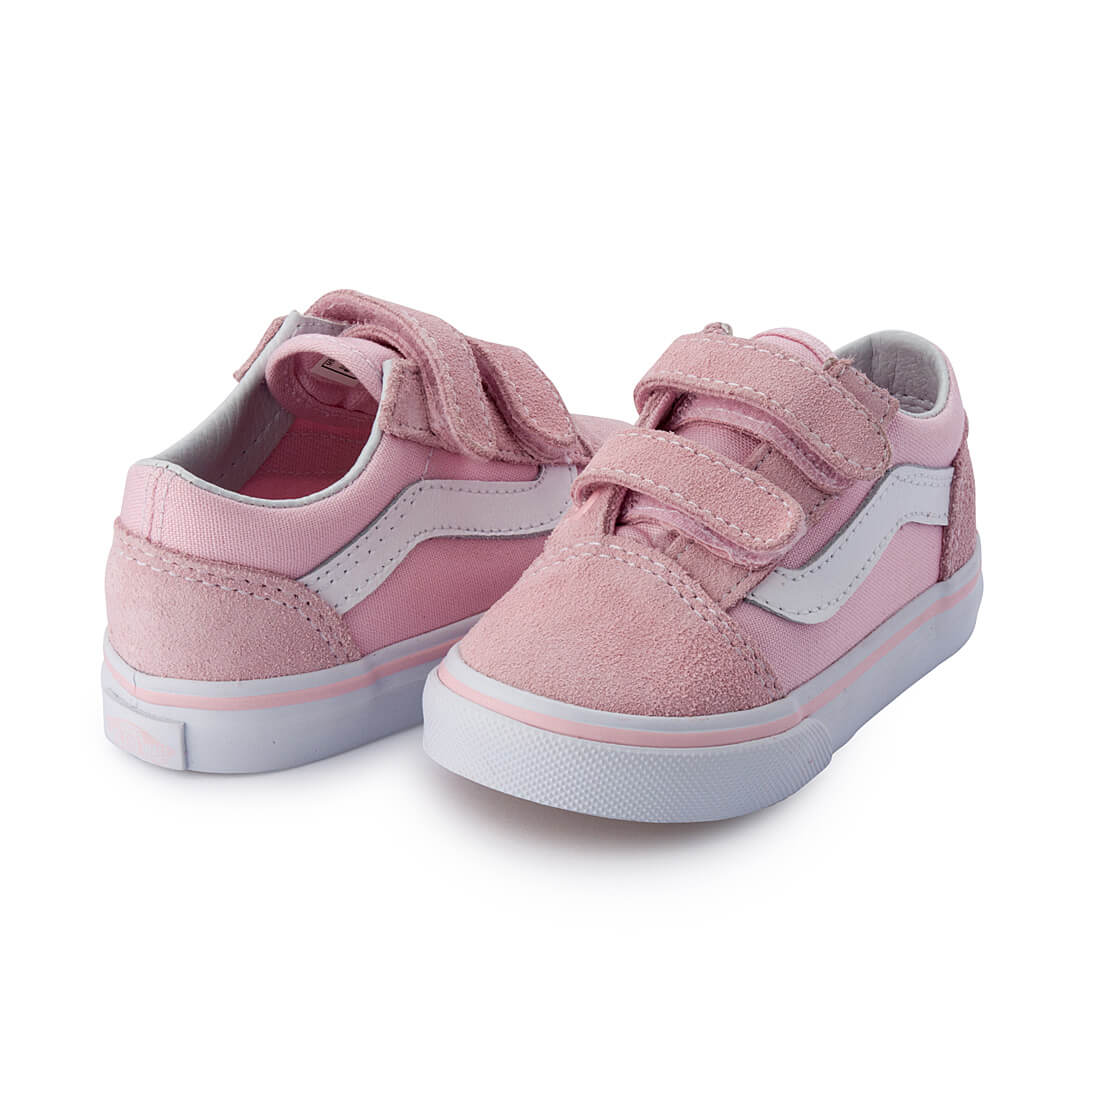 Vans Kids Old Skool V Sneaker – Pink angle pair